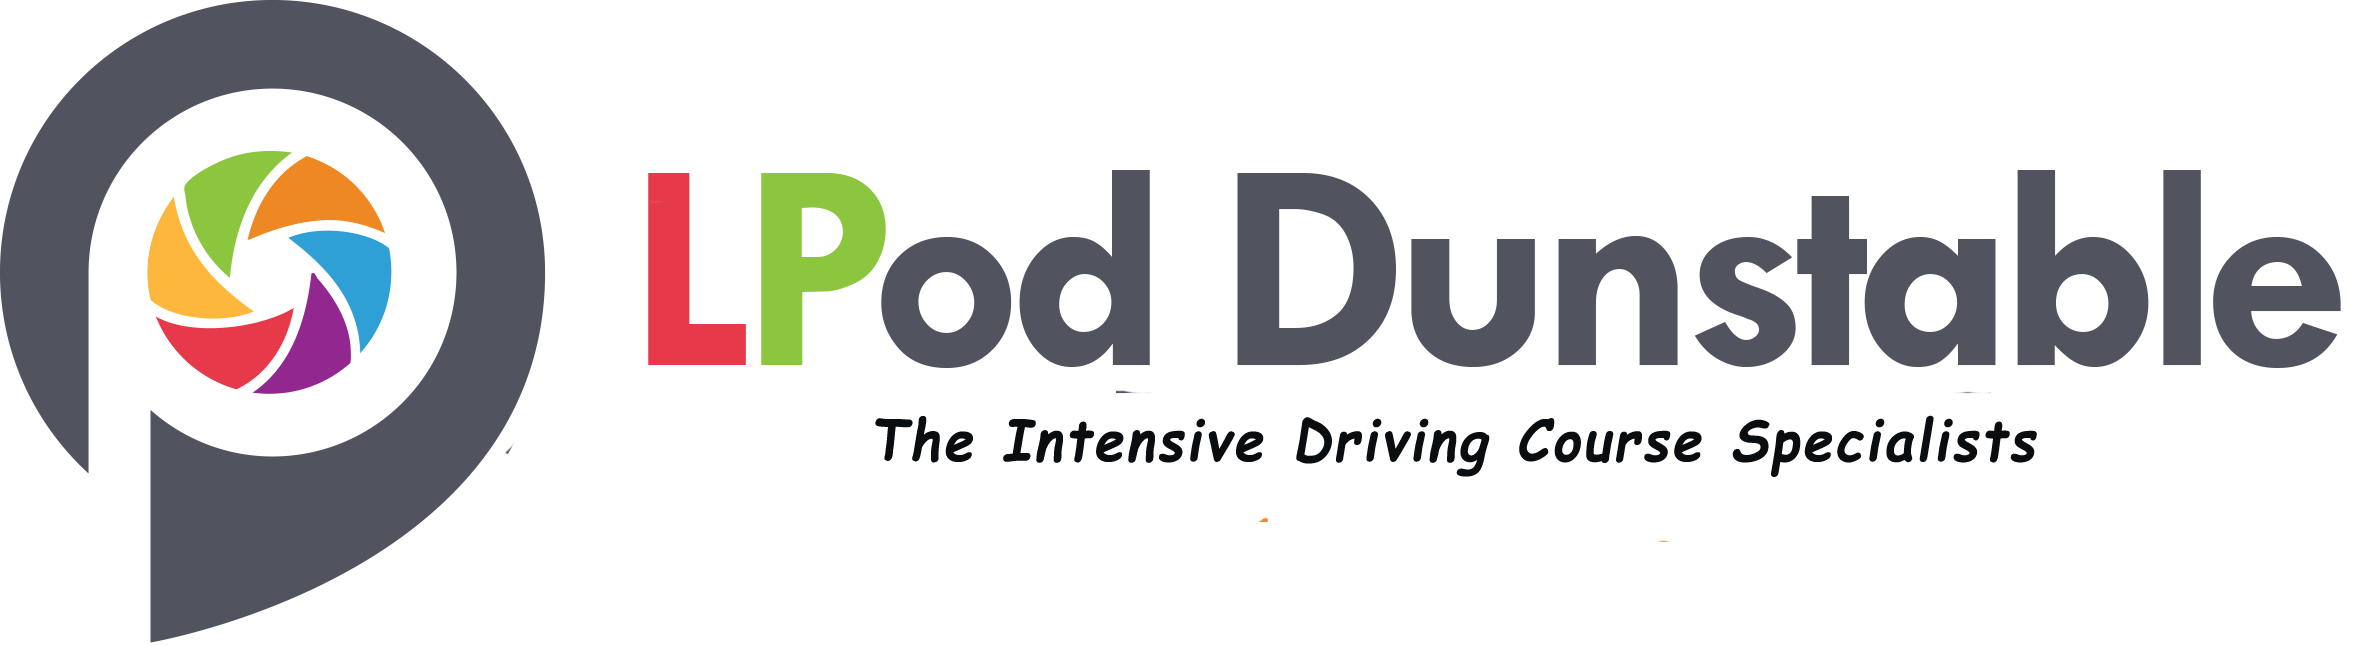 intensive driving courses dunstable